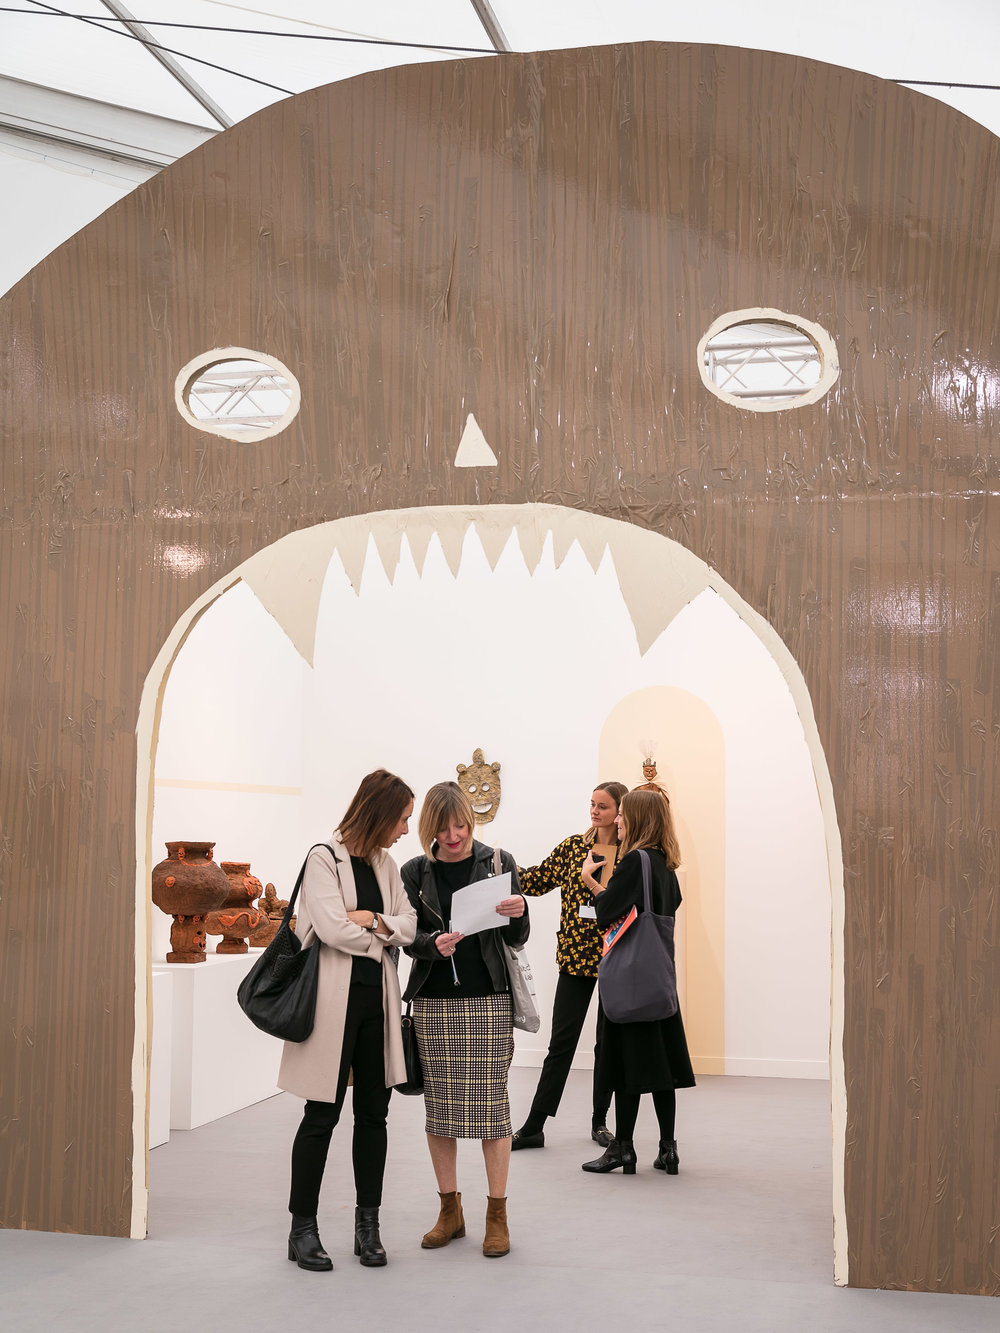 Emalin gallery, part of the Focus Section at Frieze. Photo courtesy of Mark Blower/Frieze.